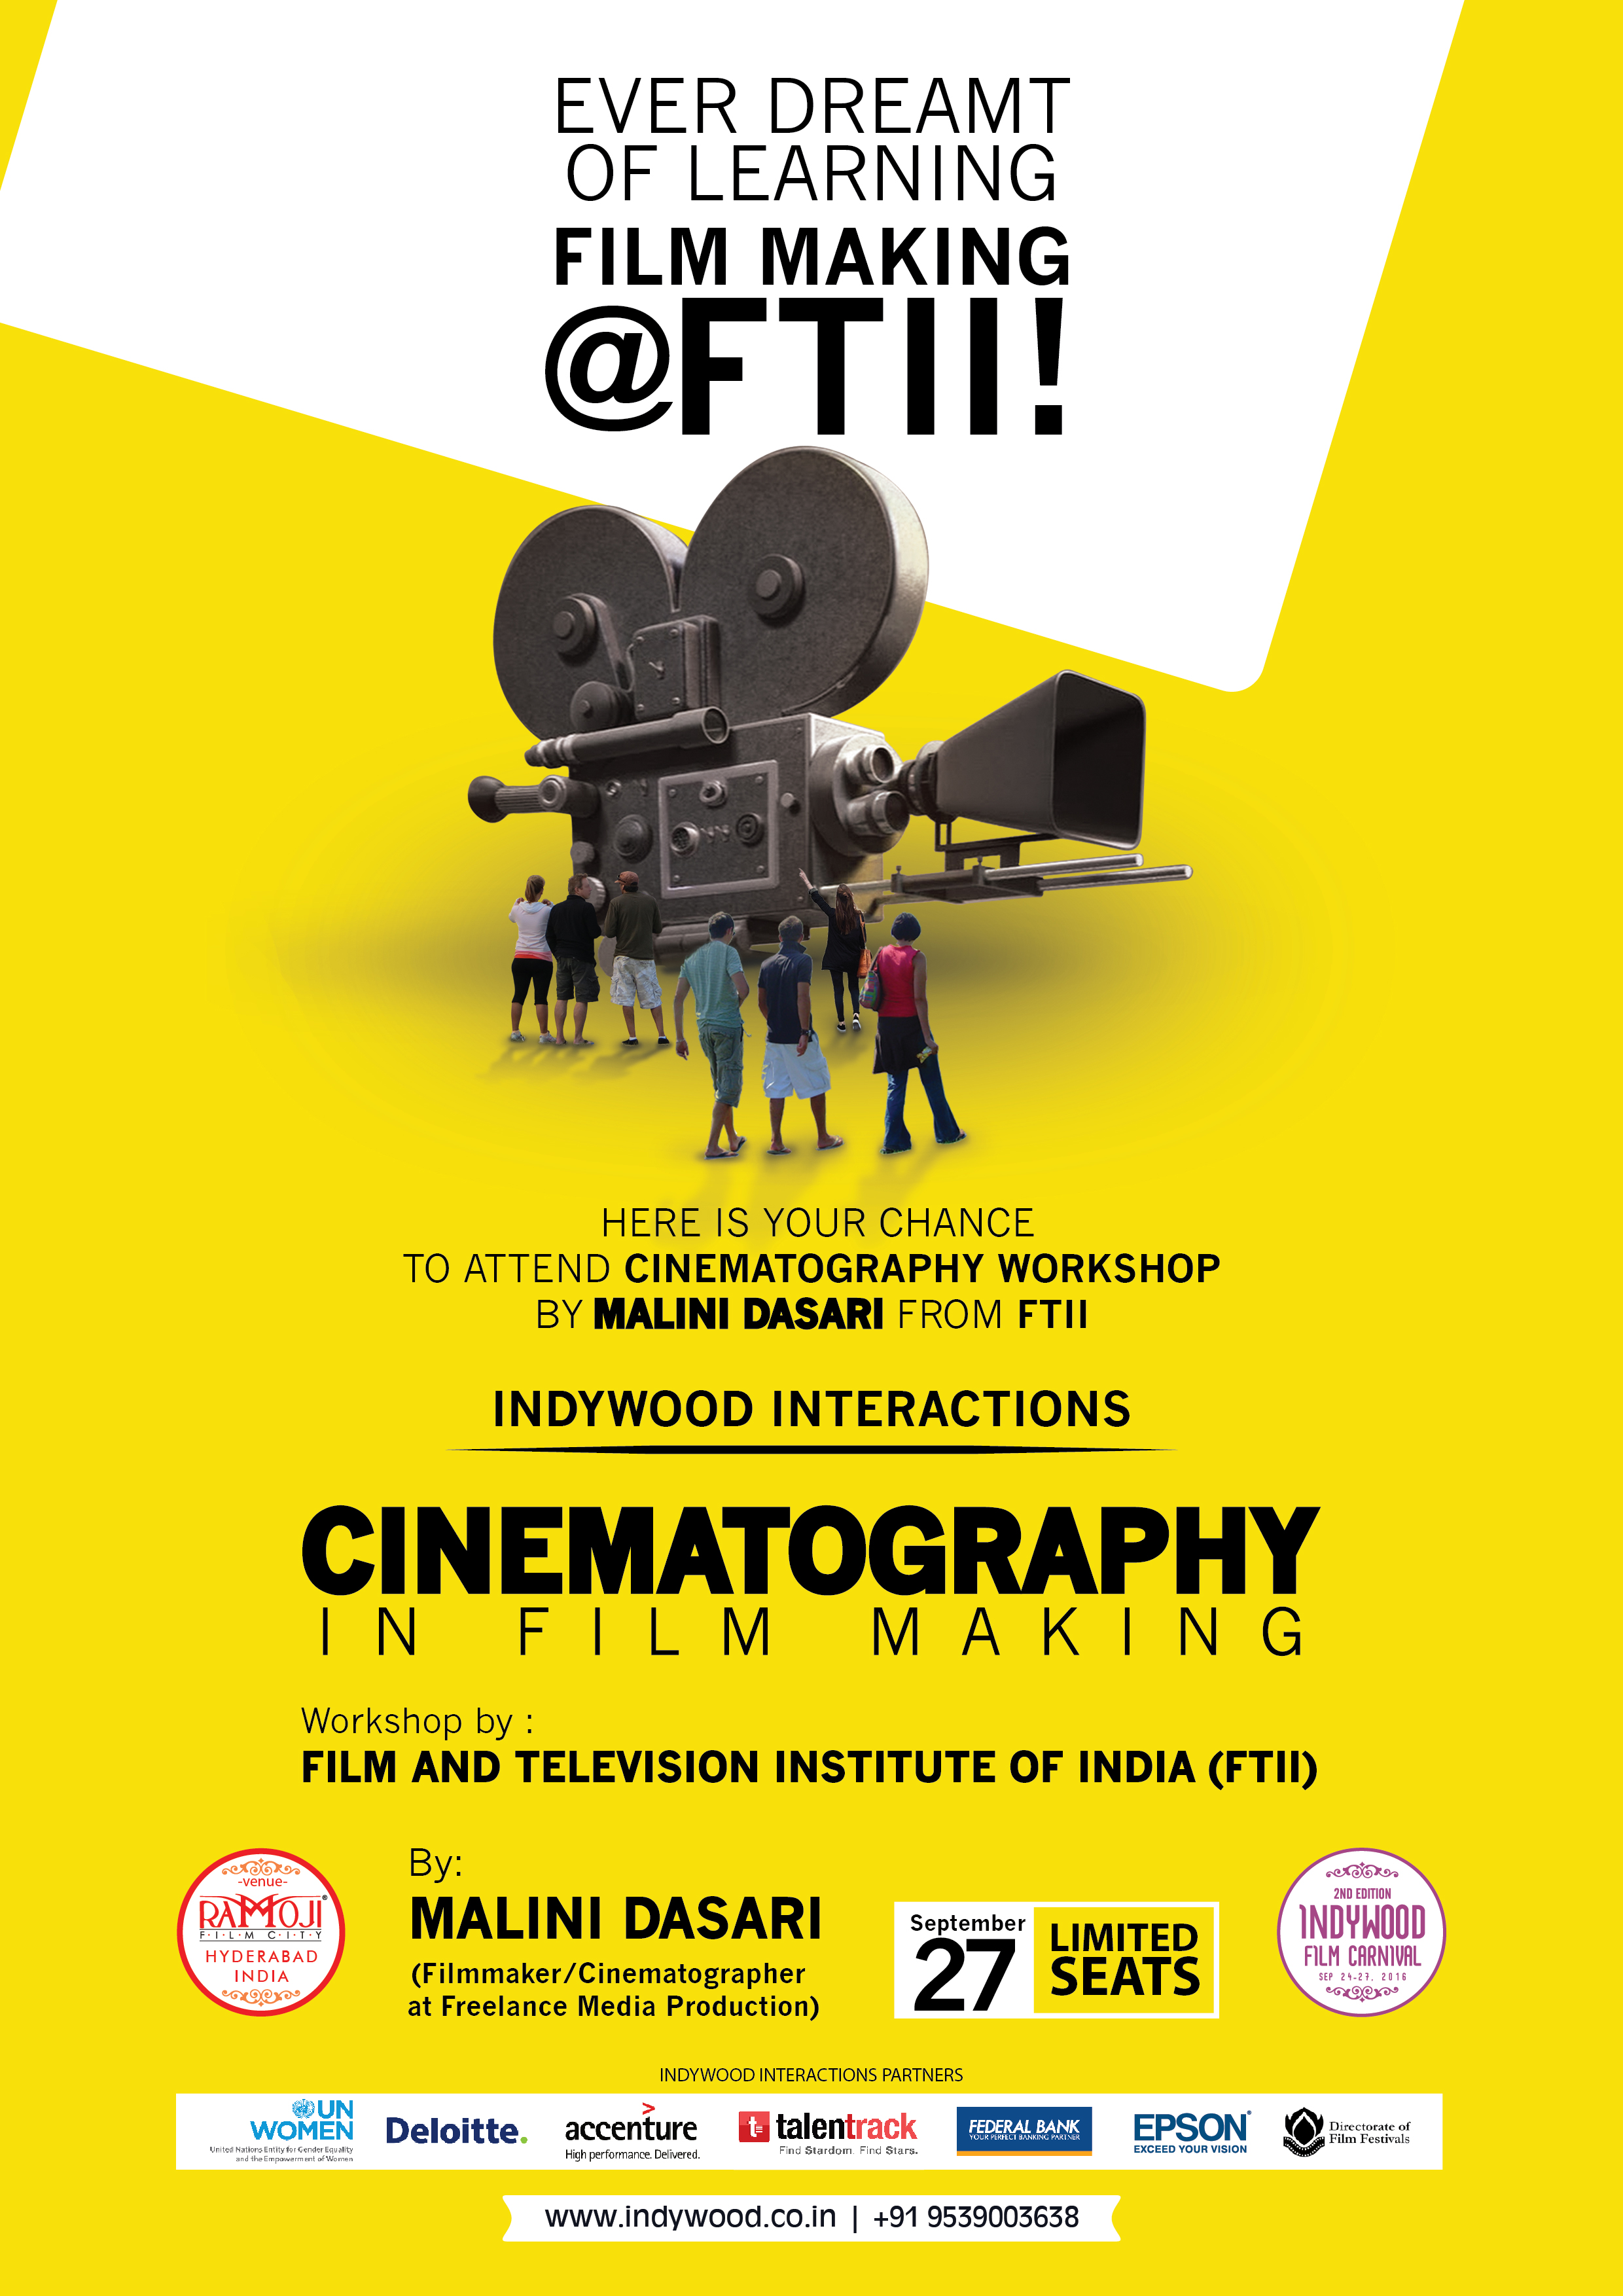 Indywood film carnival hyderabad from 24th to 27th sep 2016